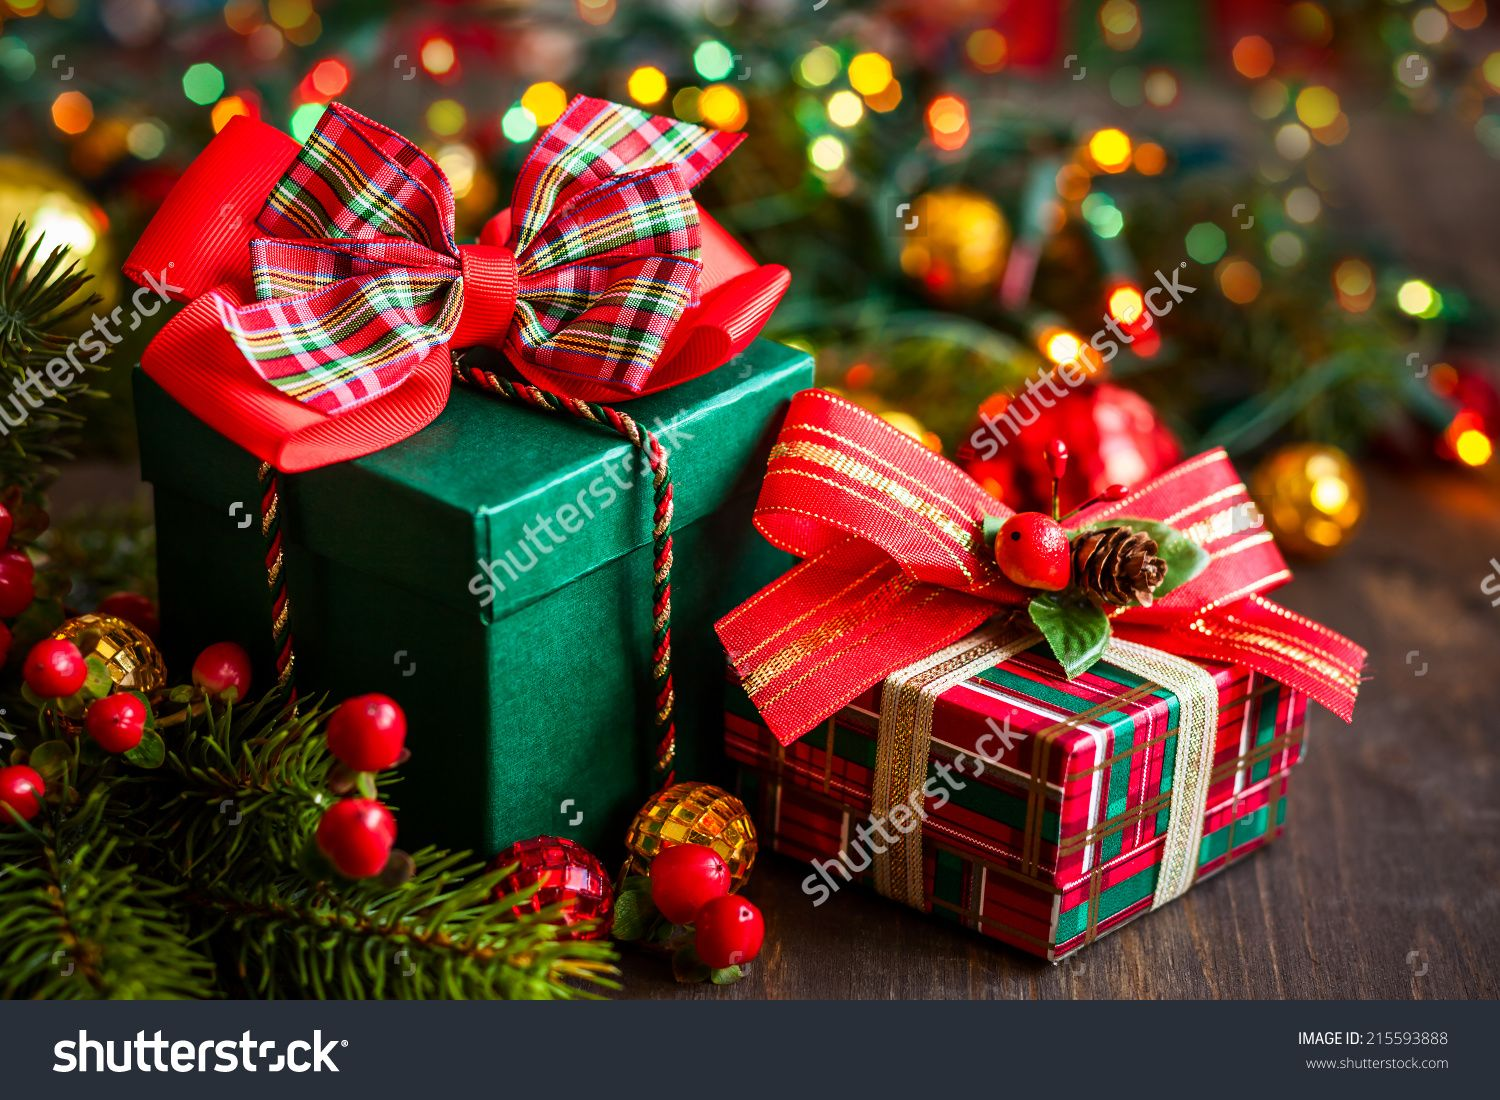 Christmas Gift Box Decorations Christmas Gift Boxes With Decorations Foto Stock 215593888